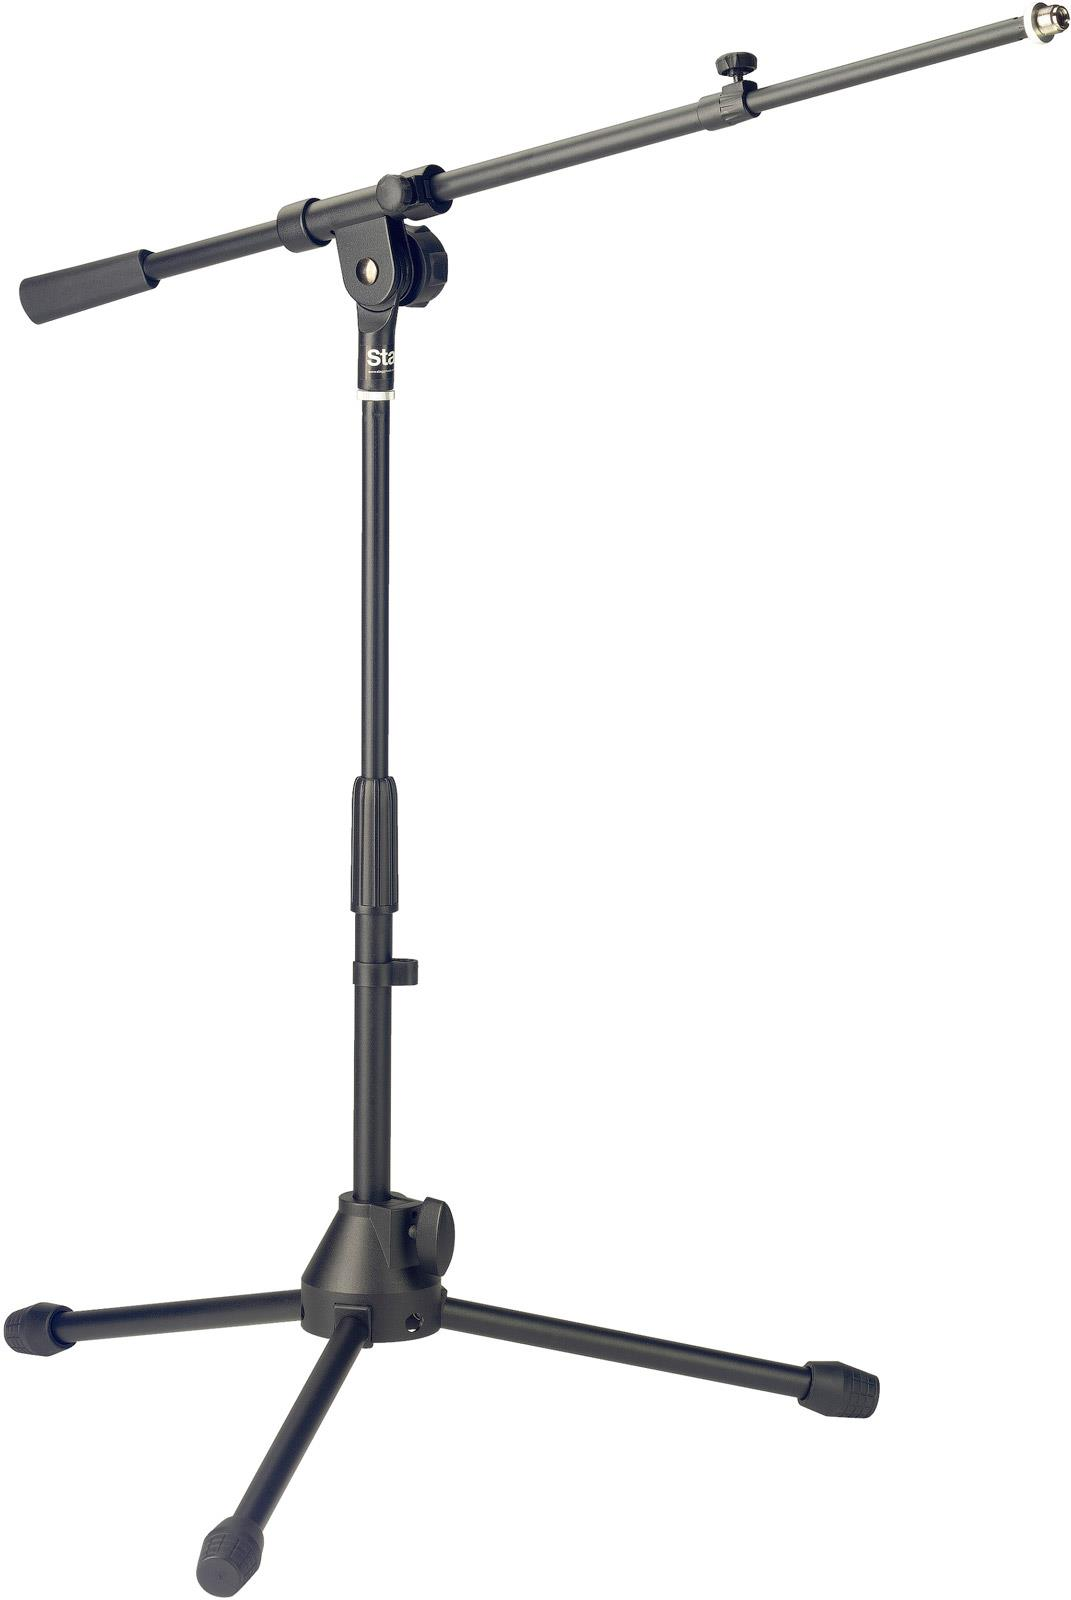 Stagg Mis Bk Low Profile Microphone Stand Telescopic